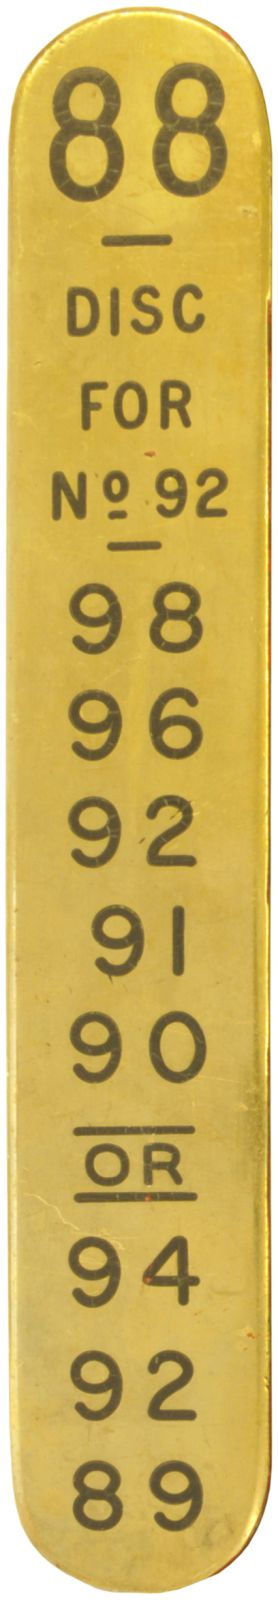 Lot 56 - Signal Lever Plates, Tiverton Starting, GWR (3): A group of GWR lever plates from Tiverton